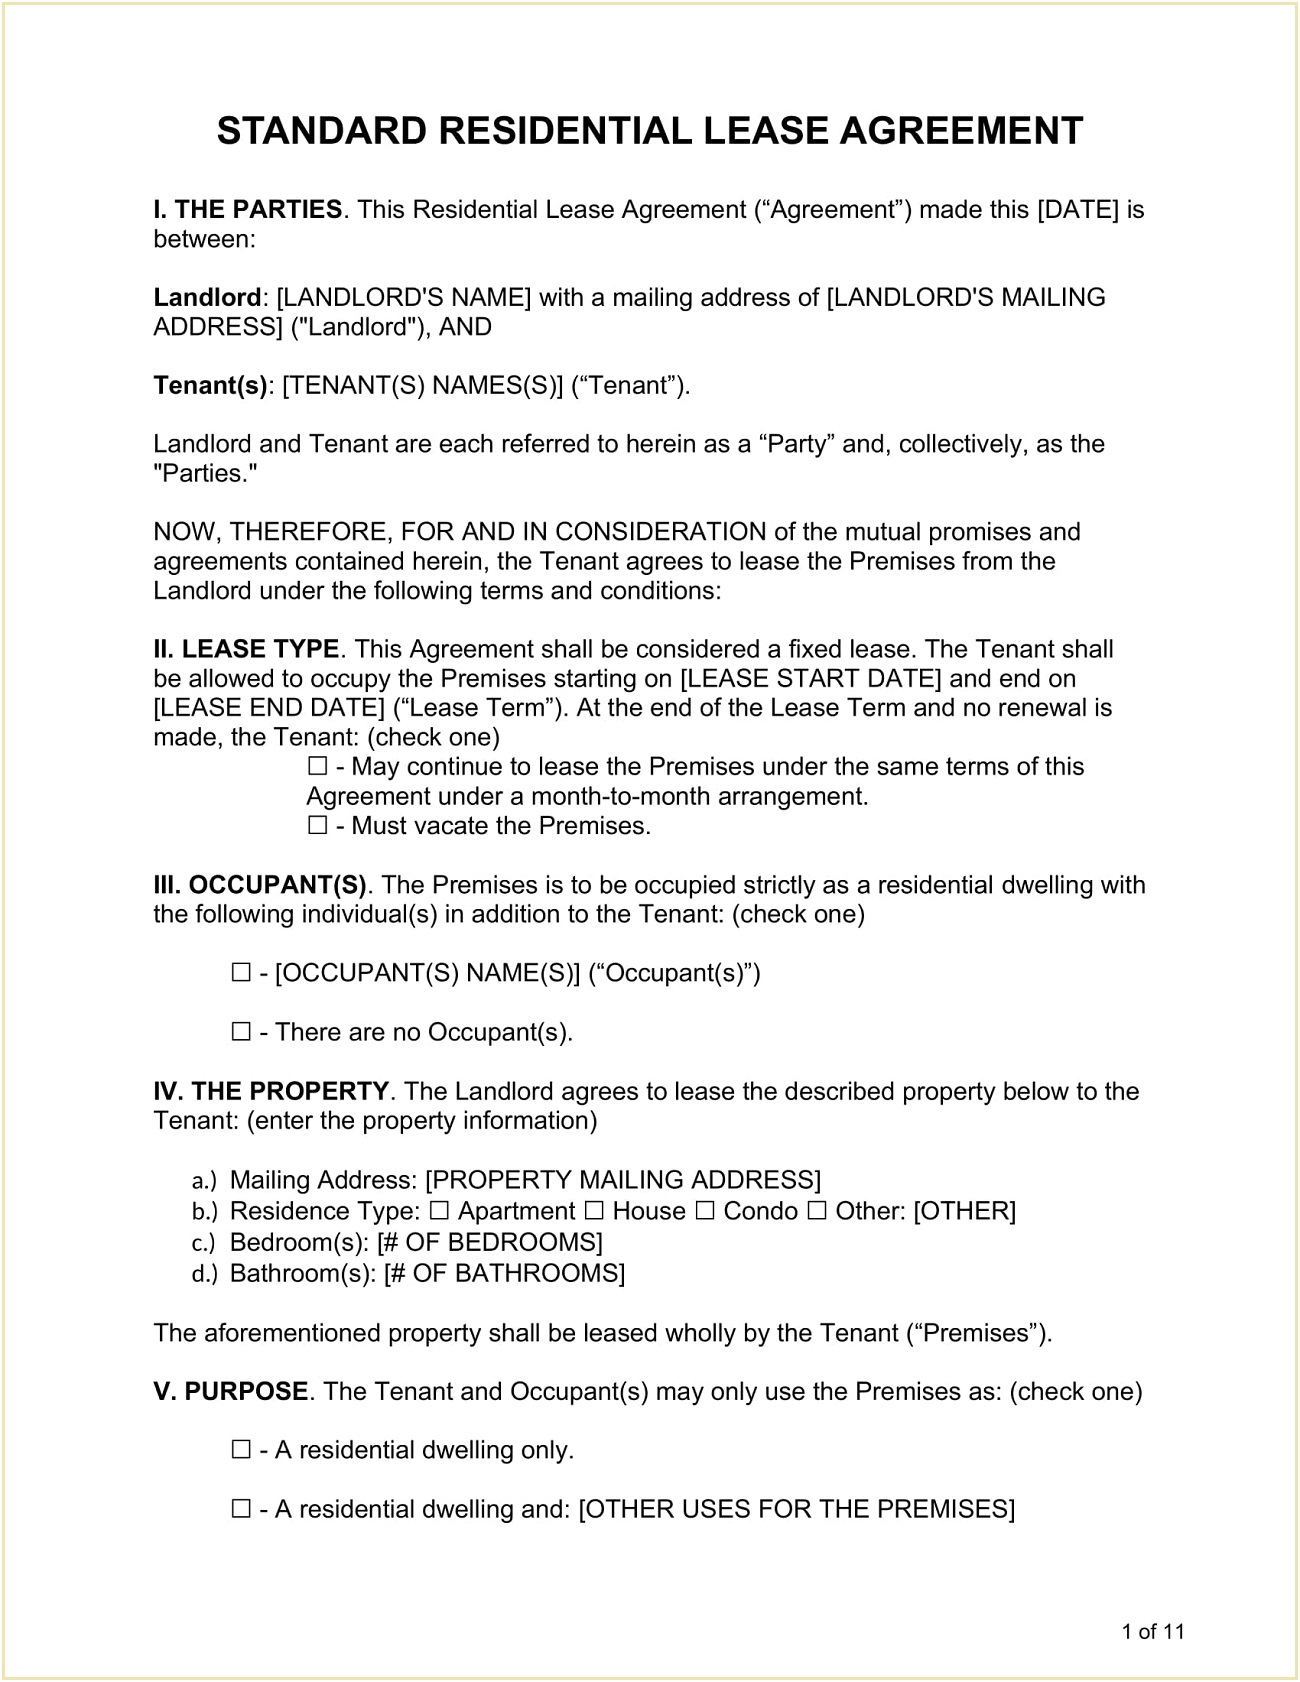 Standard Residential Lease Agreement Form Template PDF